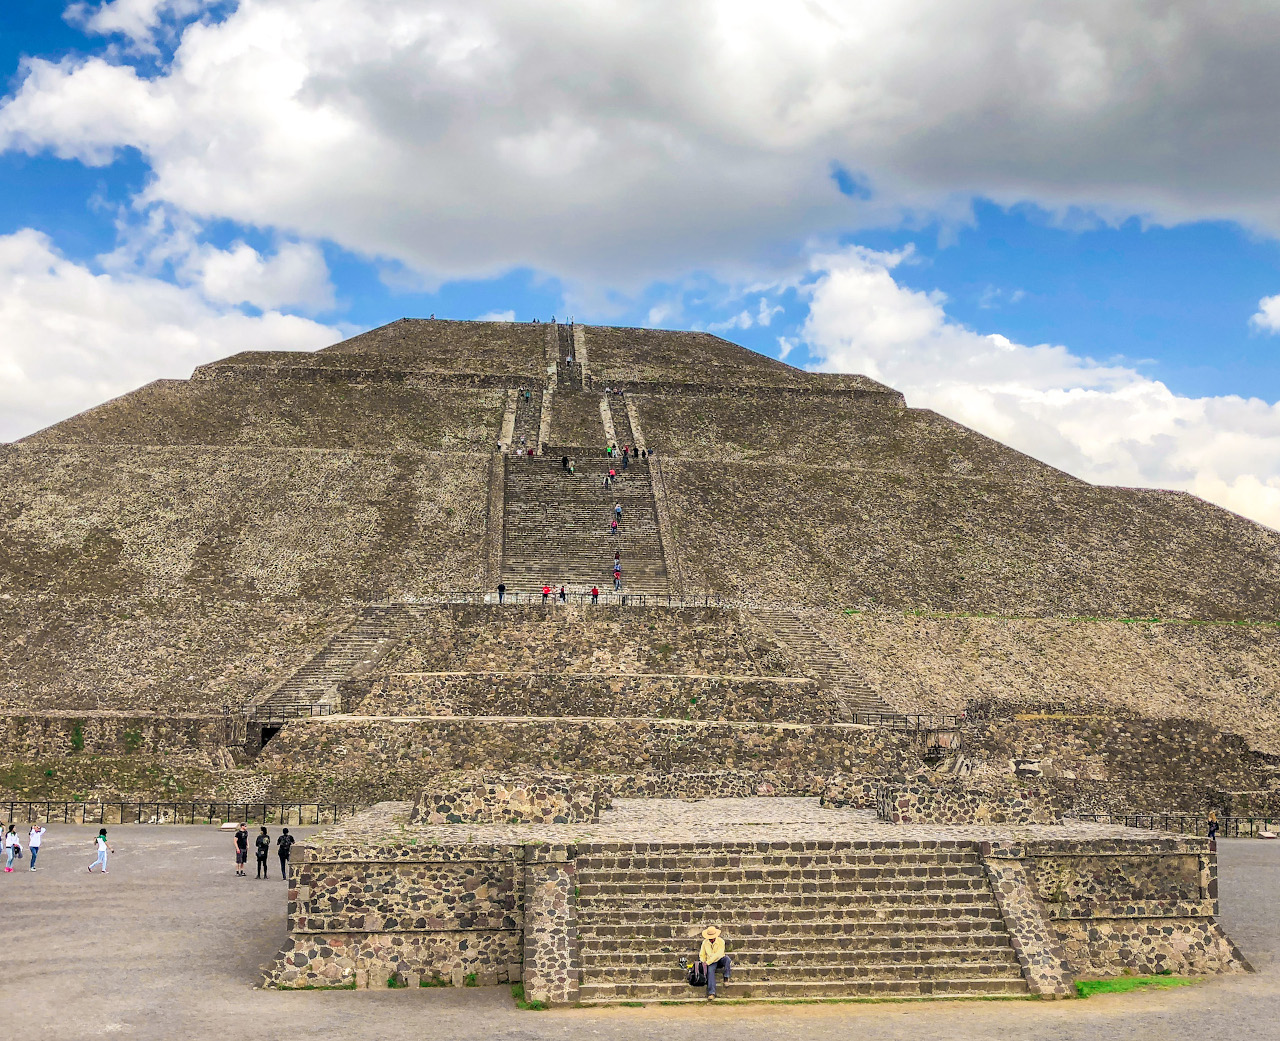 Teotihuacan is one of the best things to do near Mexico City. Here's your comprehensive 5-day Mexico City travel itinerary